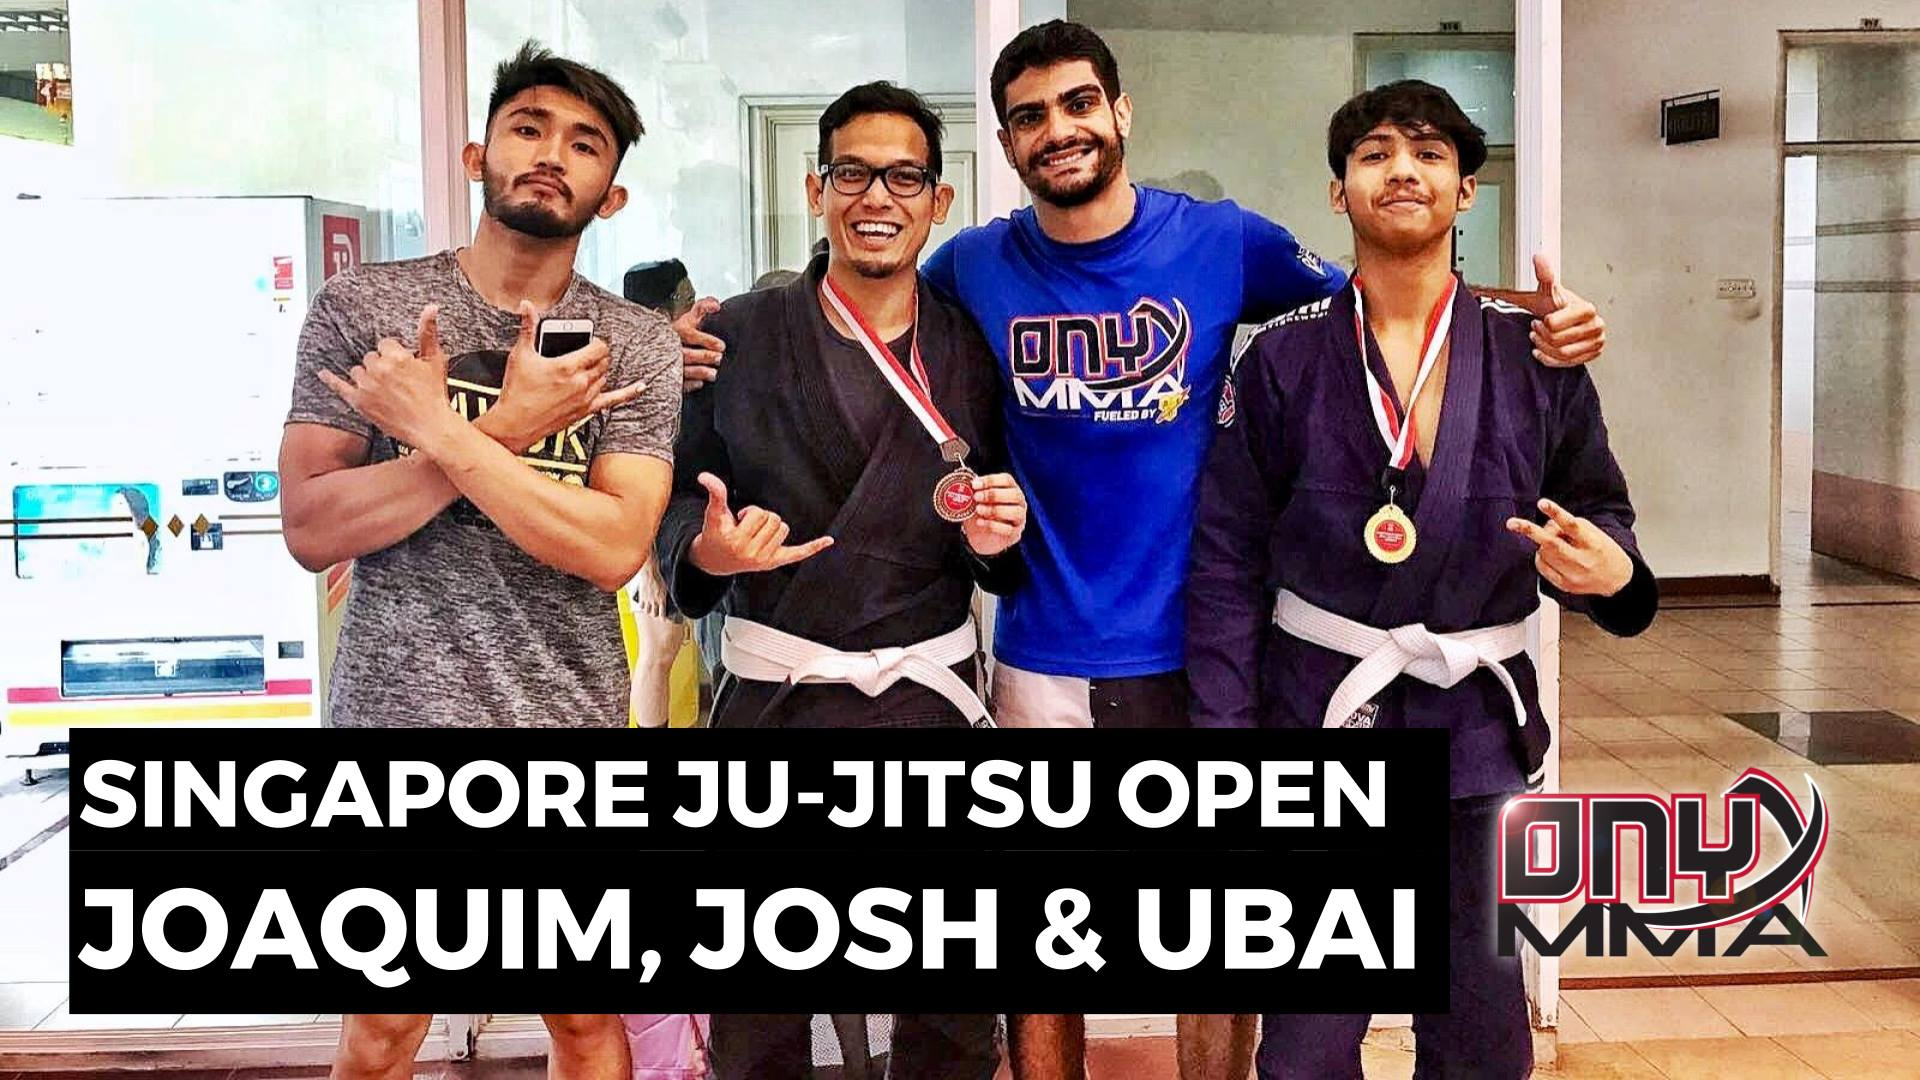 Singapore Ju-Jitsu Open - 19 Aug 2017